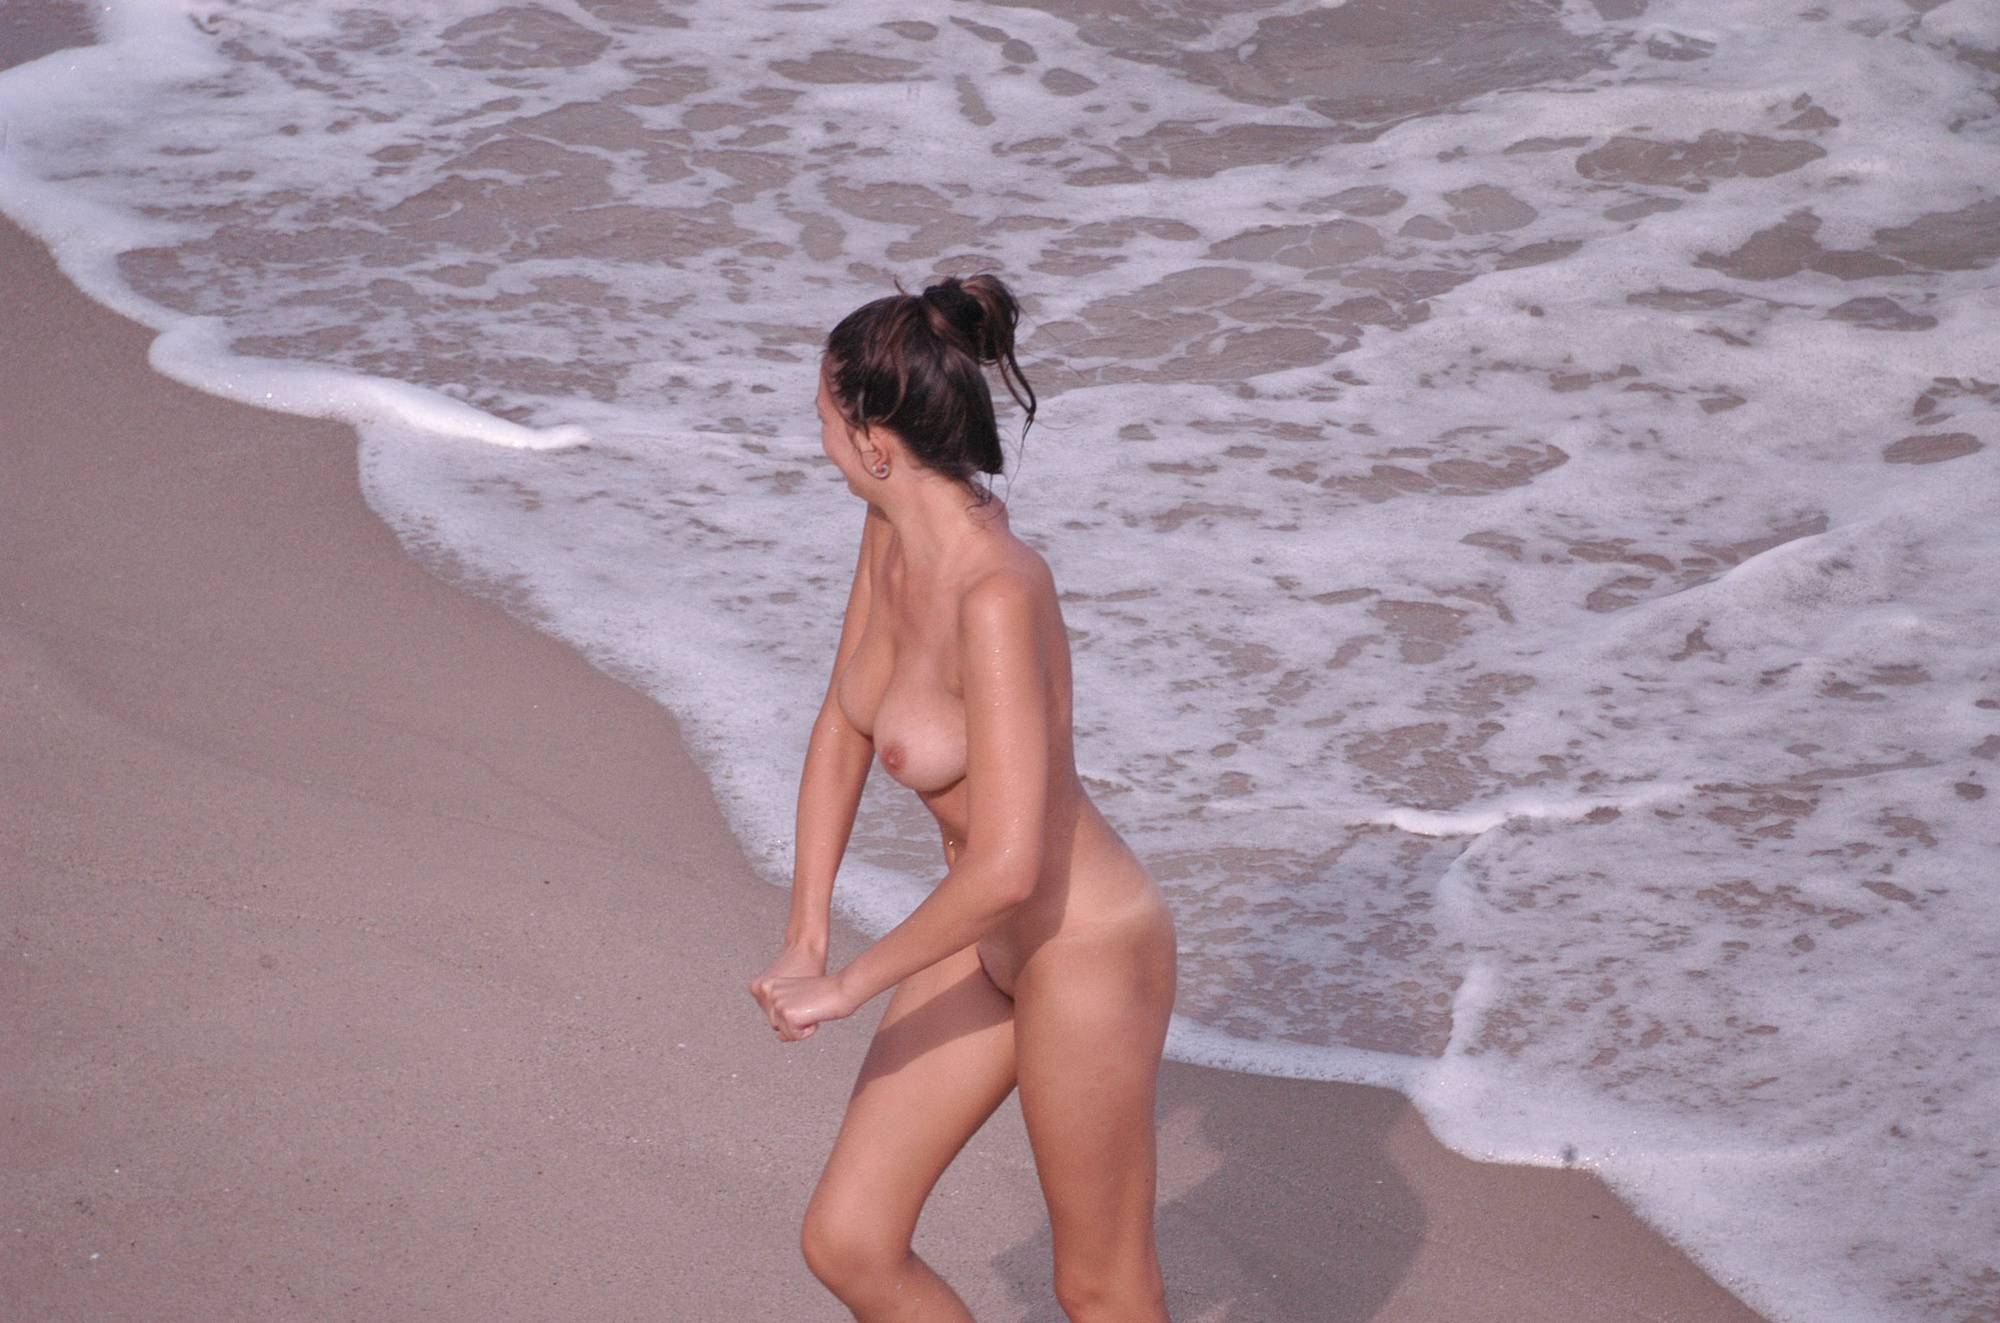 Nudist Pictures Verna Beach Waters Girl - 2